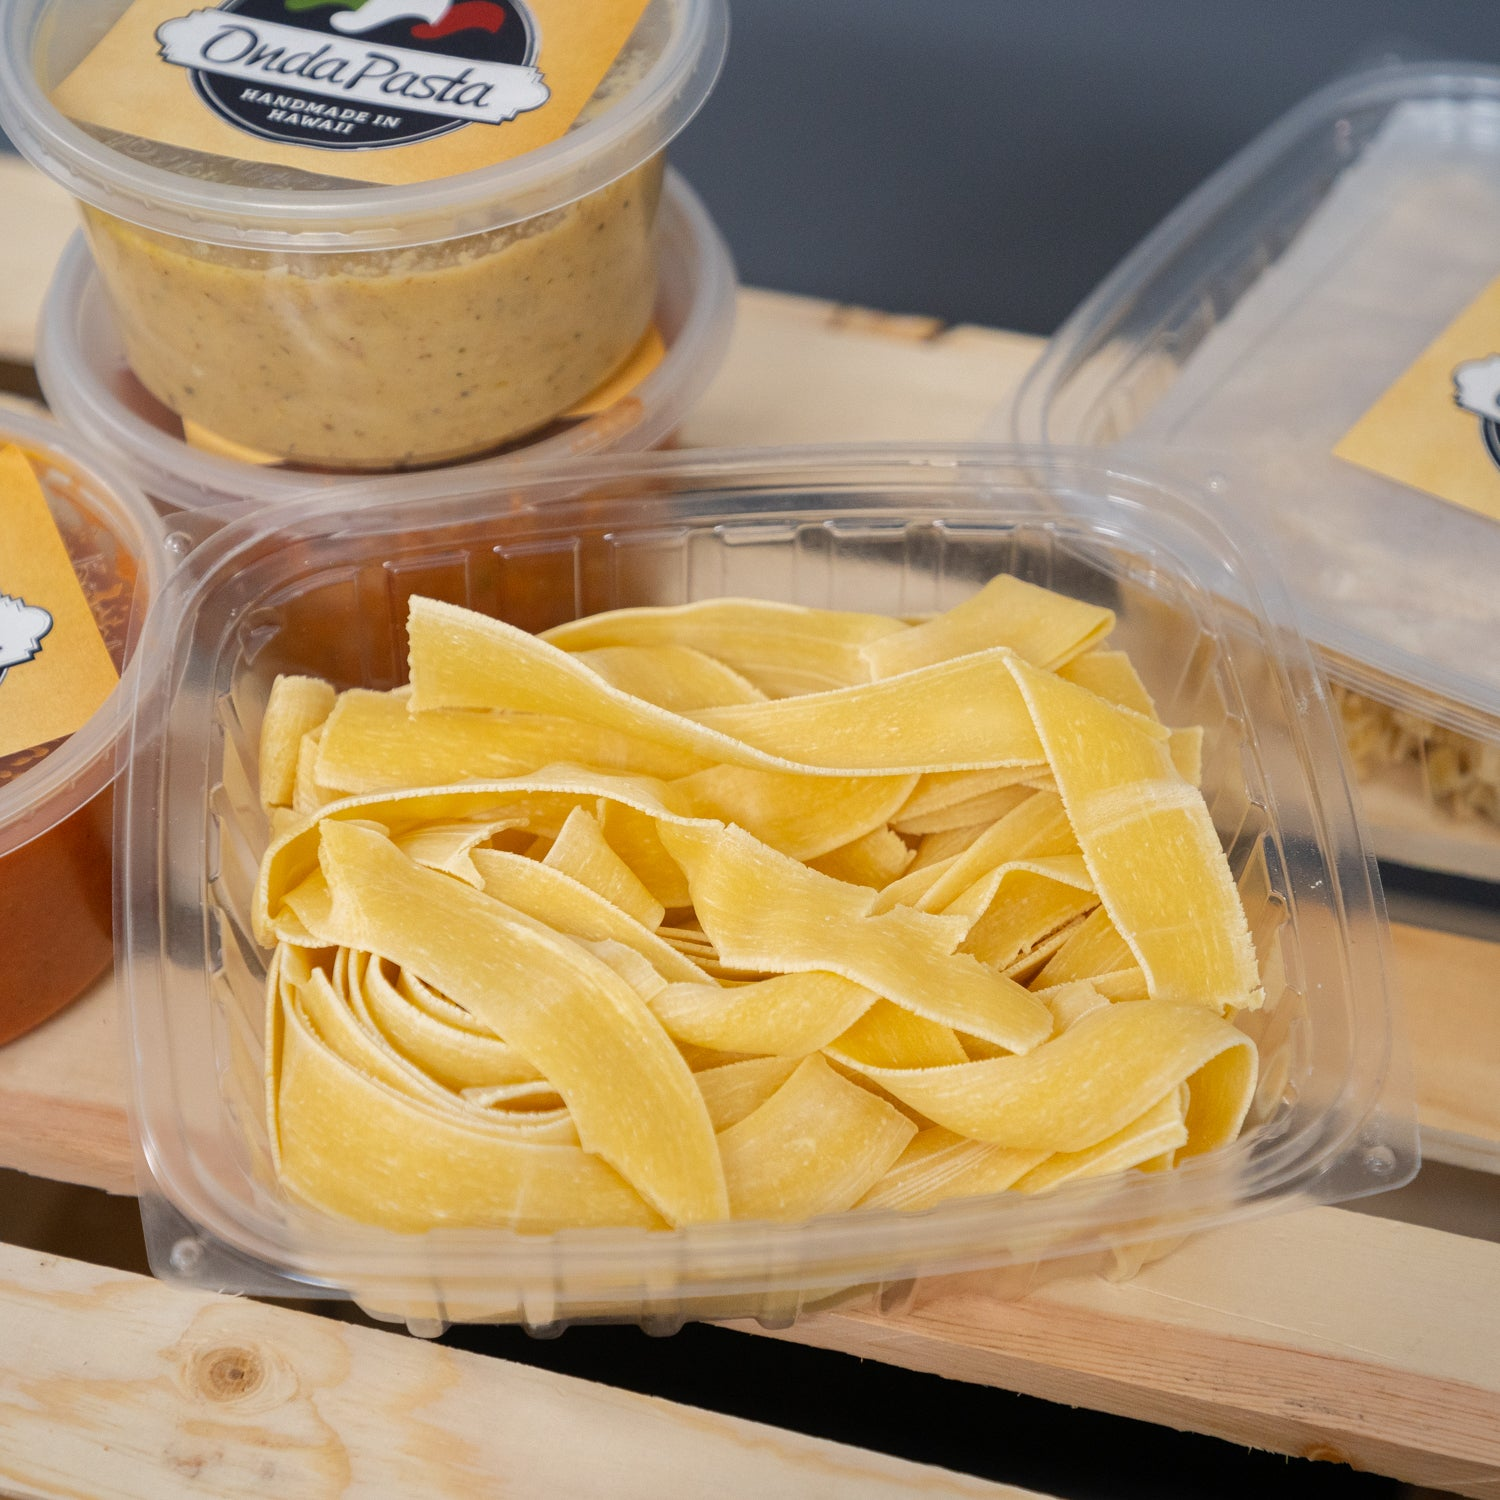 Onda Homemade Boxed Pasta - Pappardelle